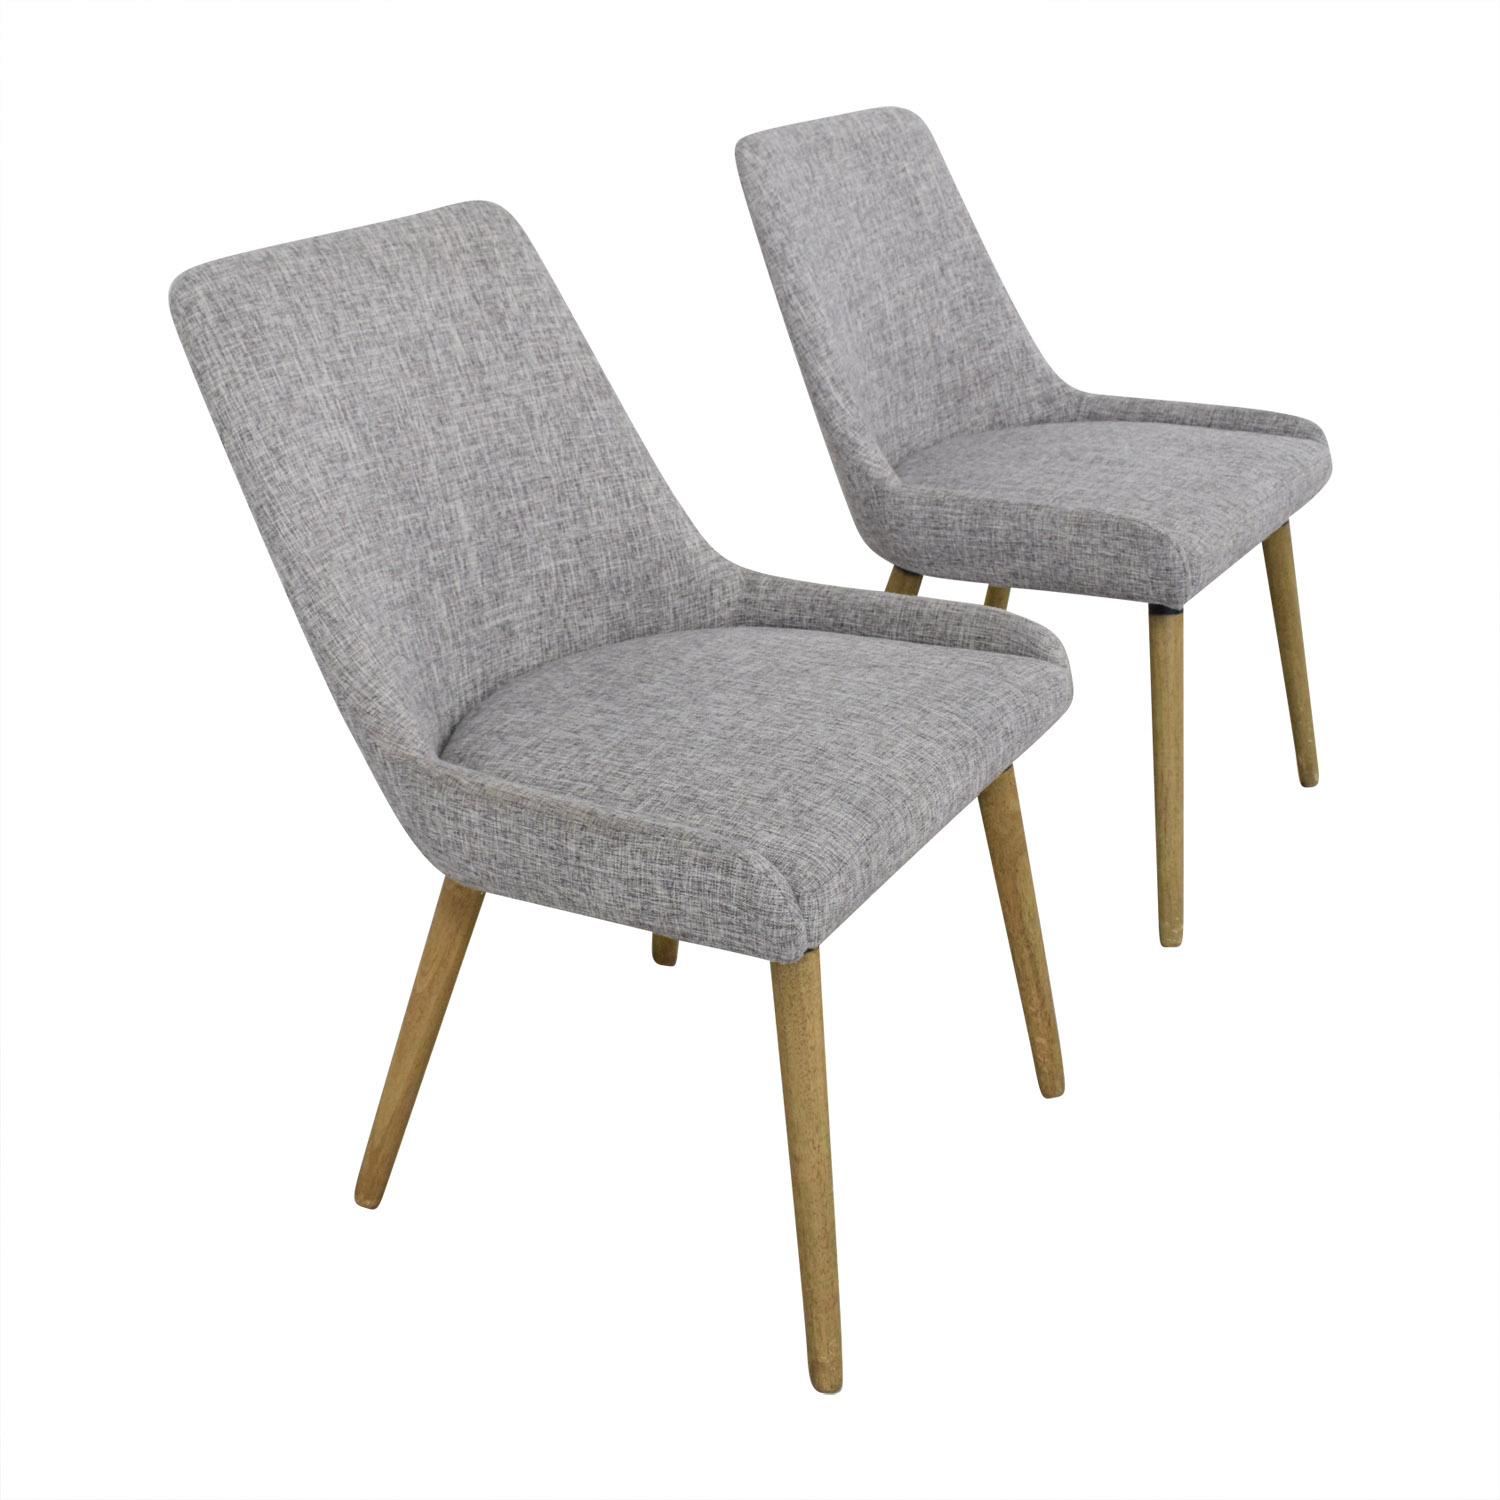 West Elm West Elm Mid-Century Upholstered Dining Chairs Dining Chairs